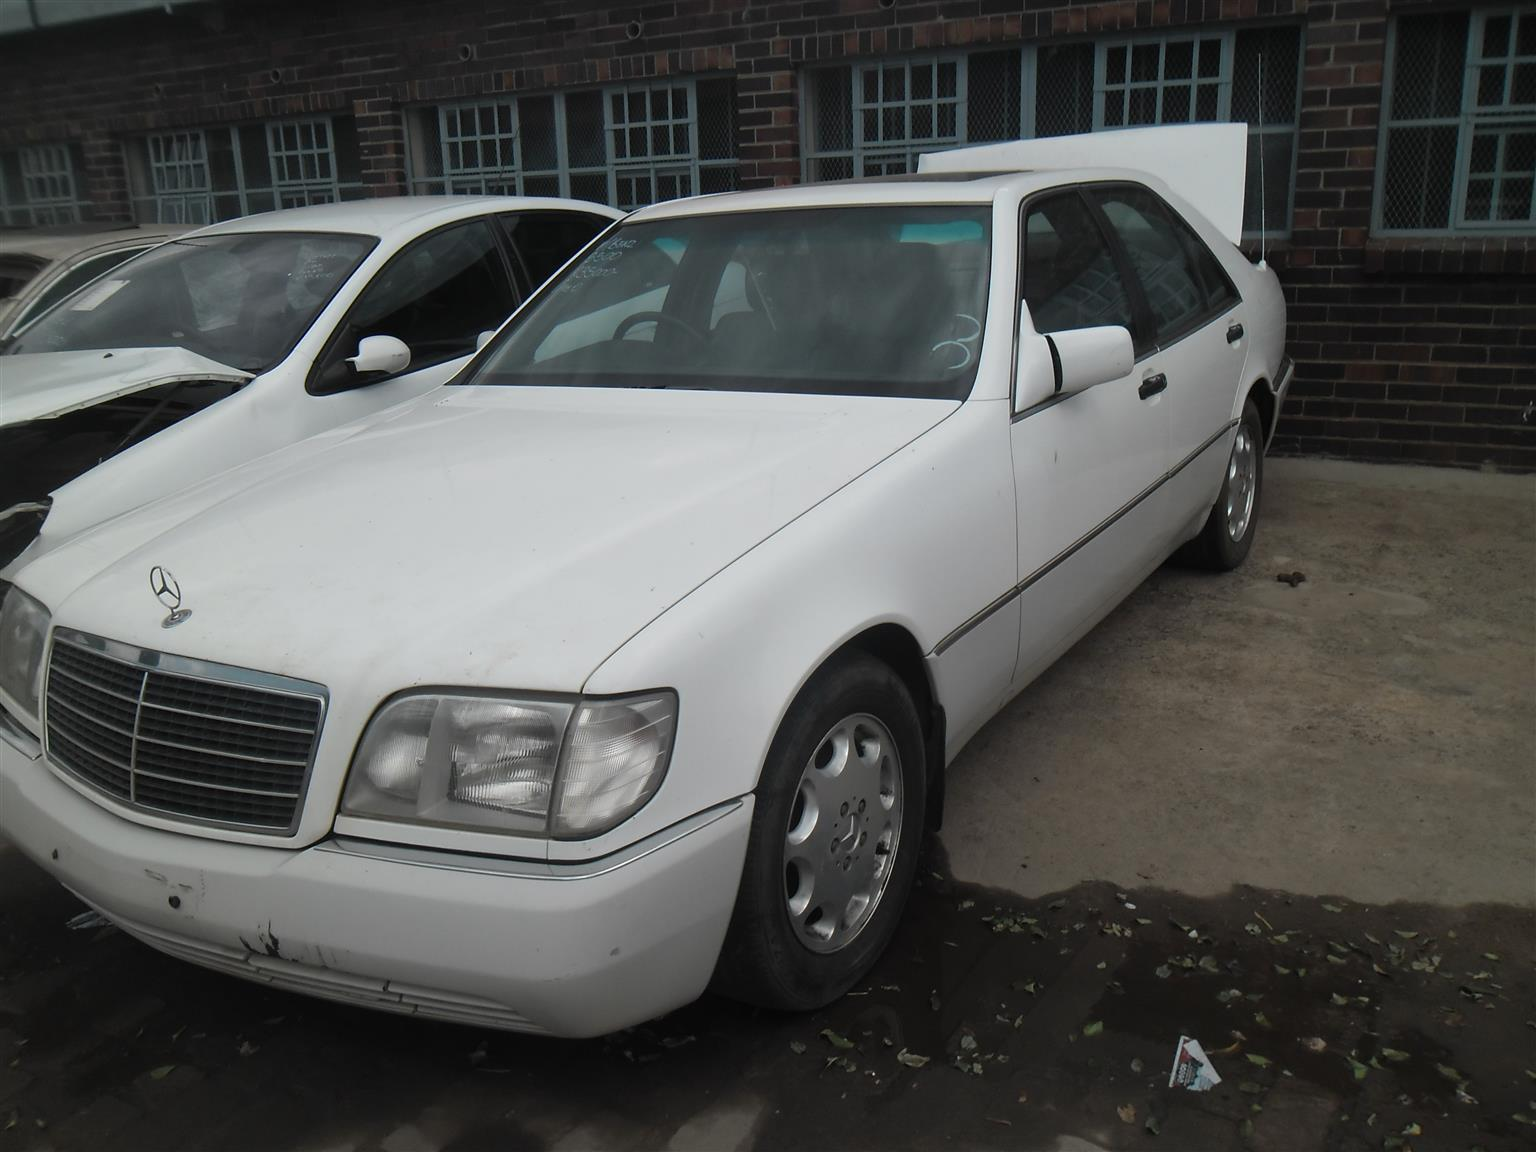 Mercedes benz s500 w140 stripping for spares gearbox for for Mercedes benz auto body